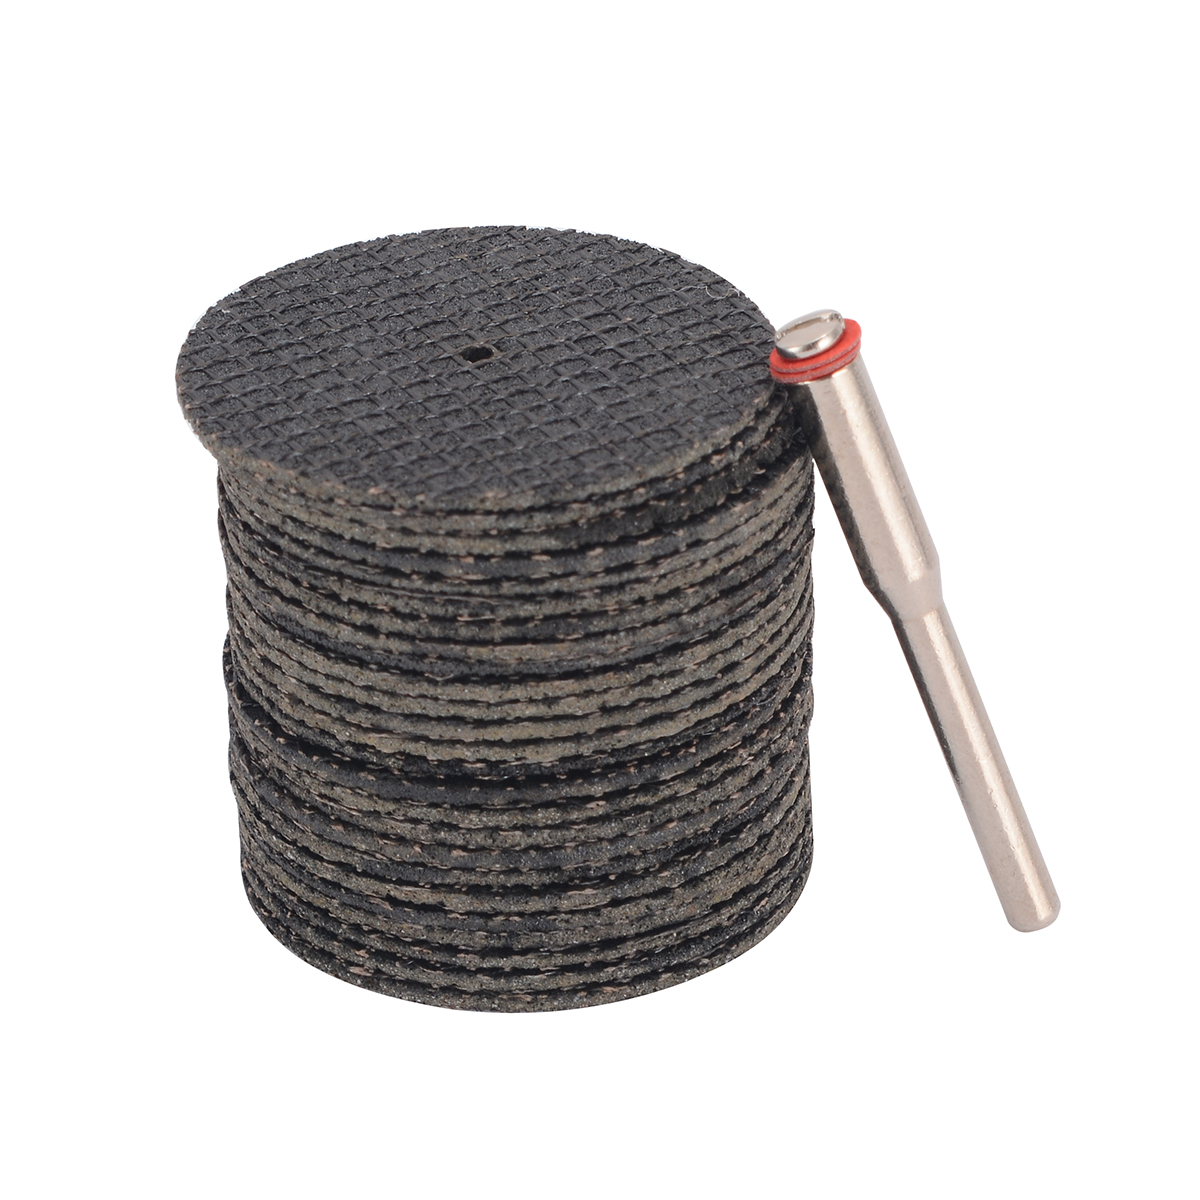 25pcs 32mm Resin Cutting Wheel Cut-off Discs Set 2mm Diameter With Connection Rod For Rotary Tools